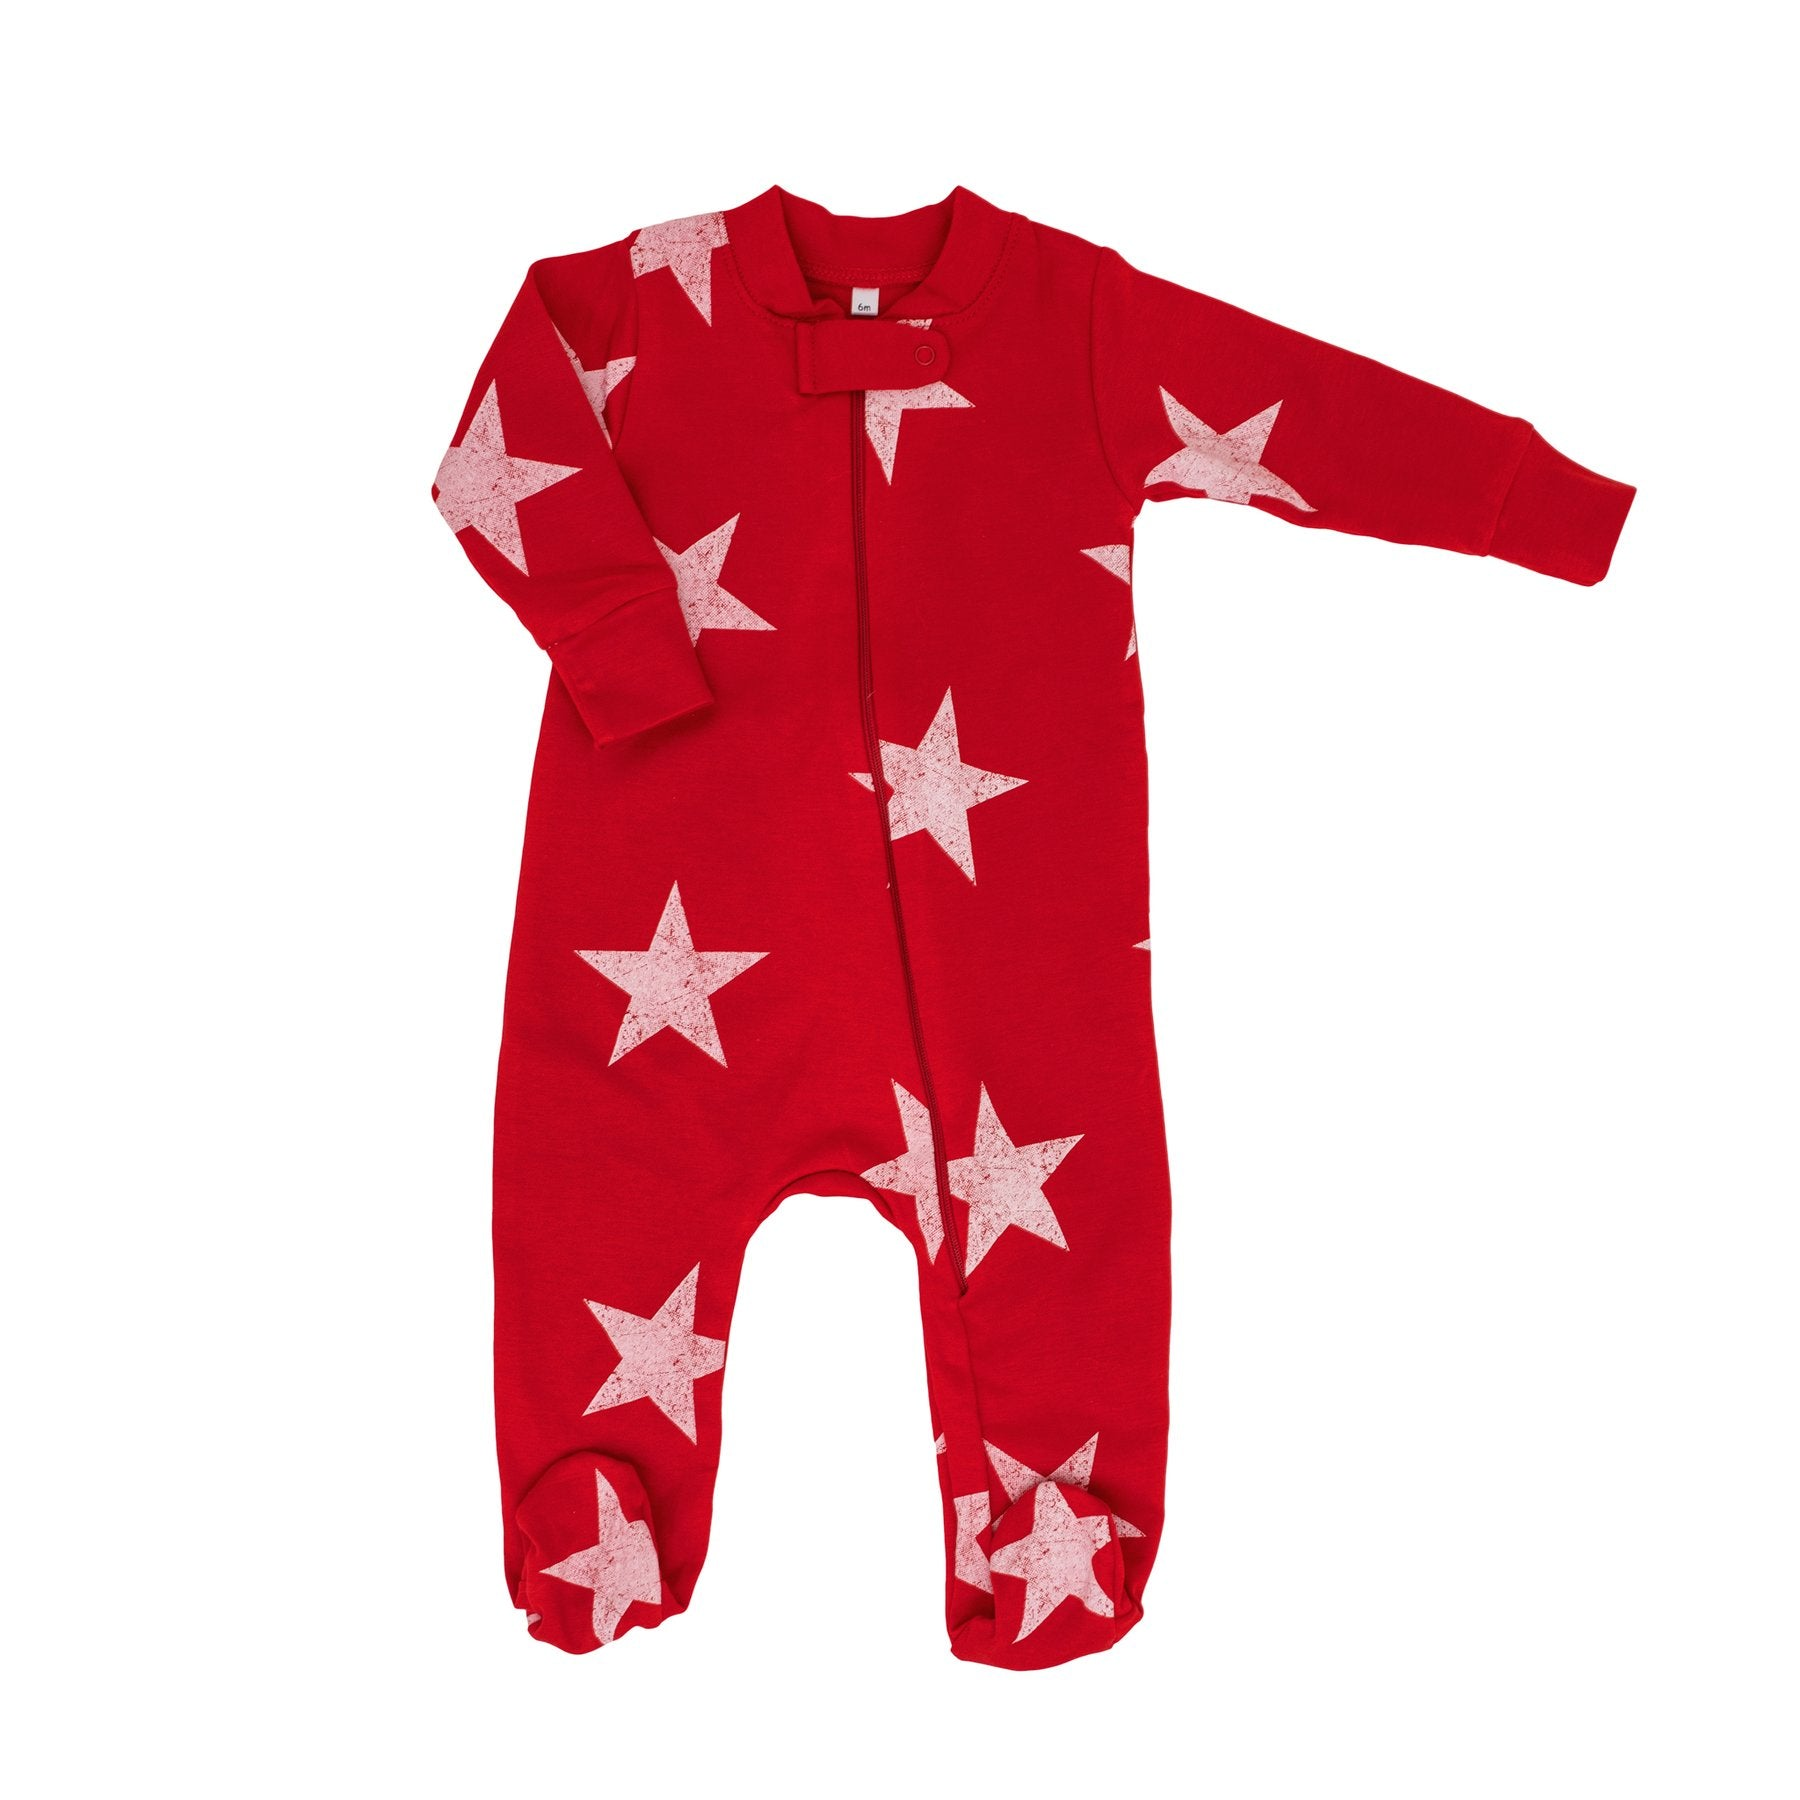 PRE-ORDER: HOLIDAY WHITE STAR ZIPPER FOOTIE ROMPER - Made by McNamara